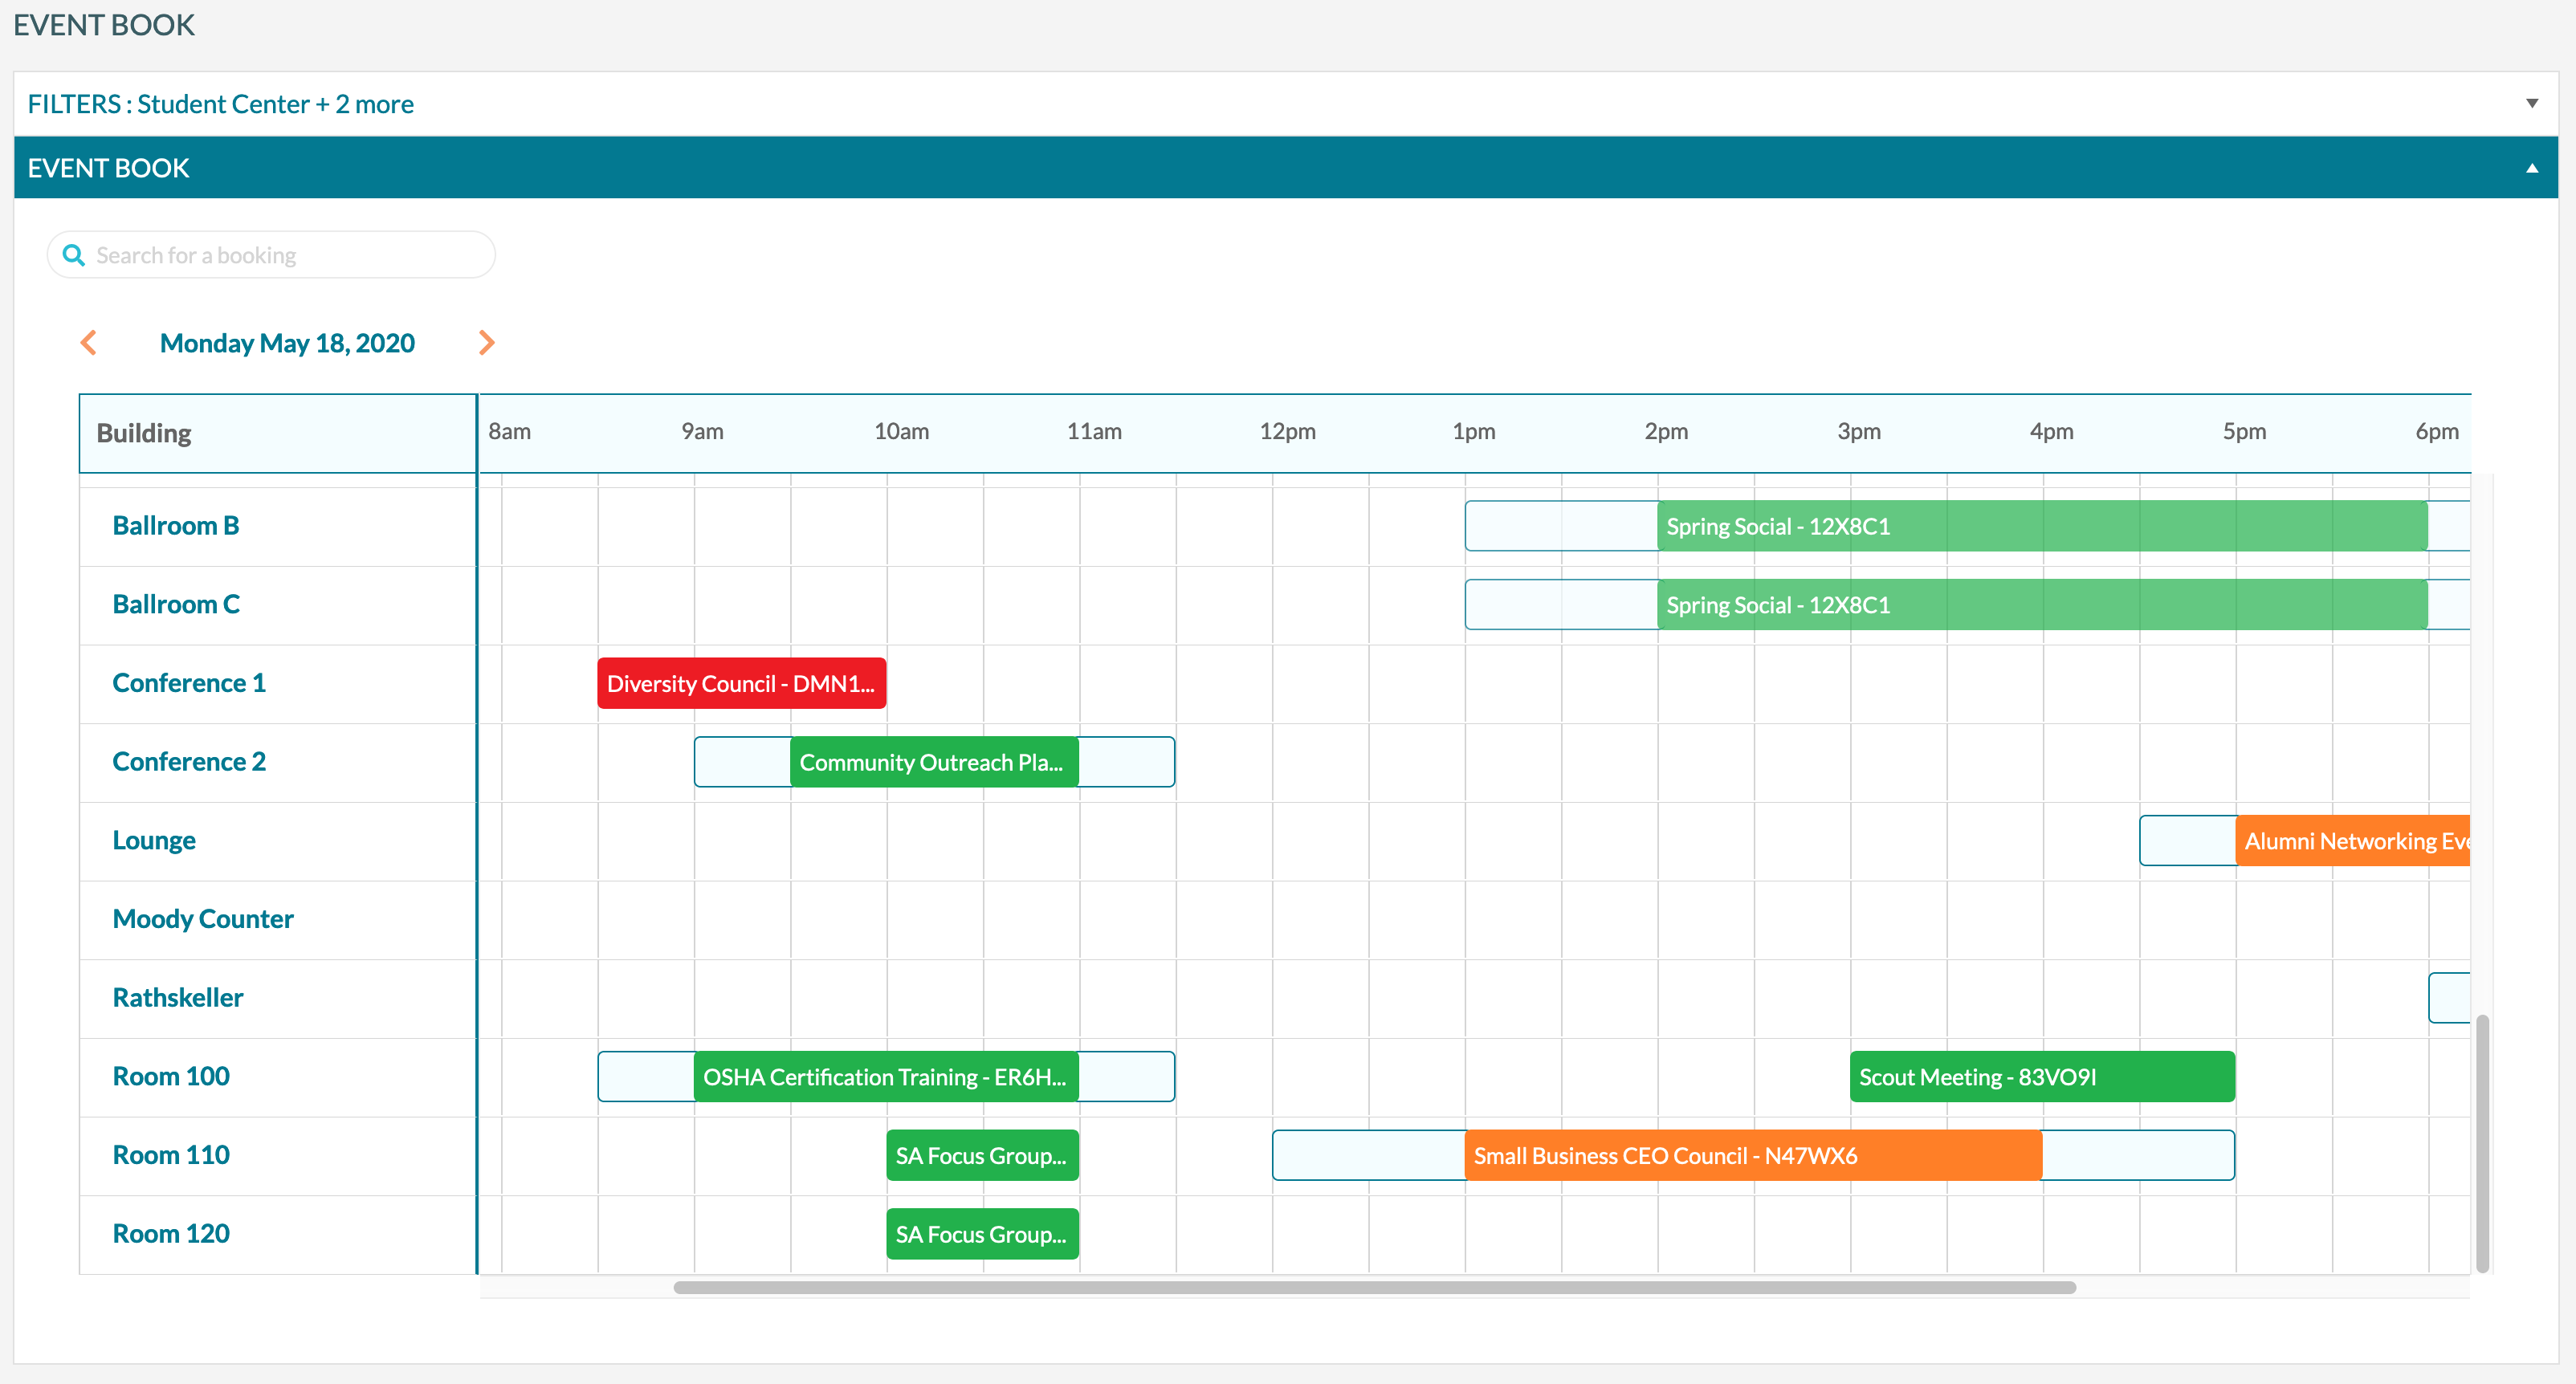 mazevo room scheduling software event book